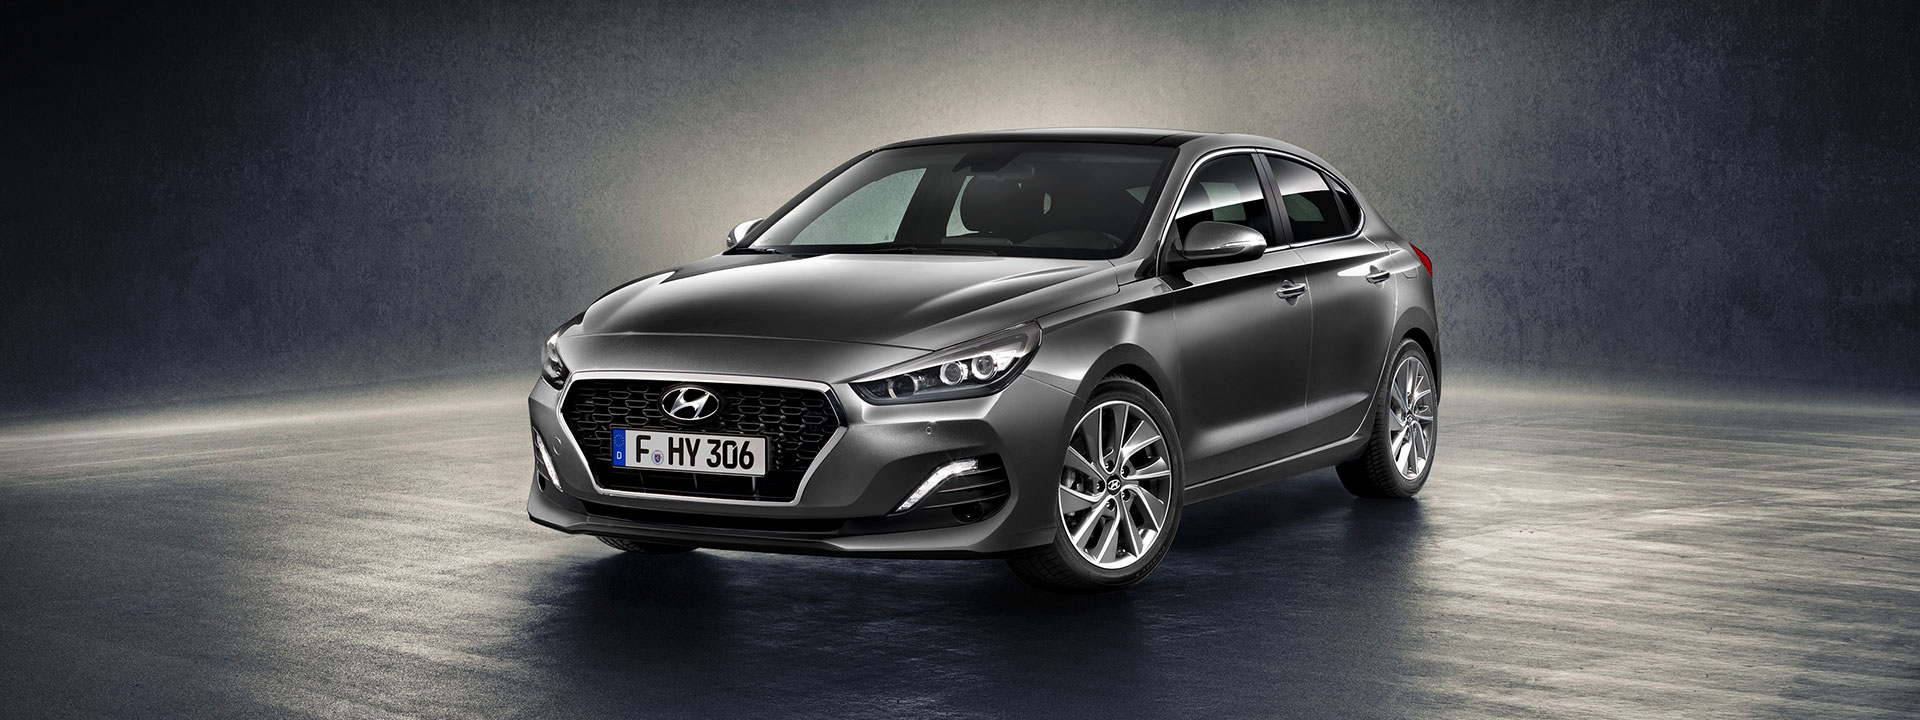 Hyundai Reveals The New i30 Fastback